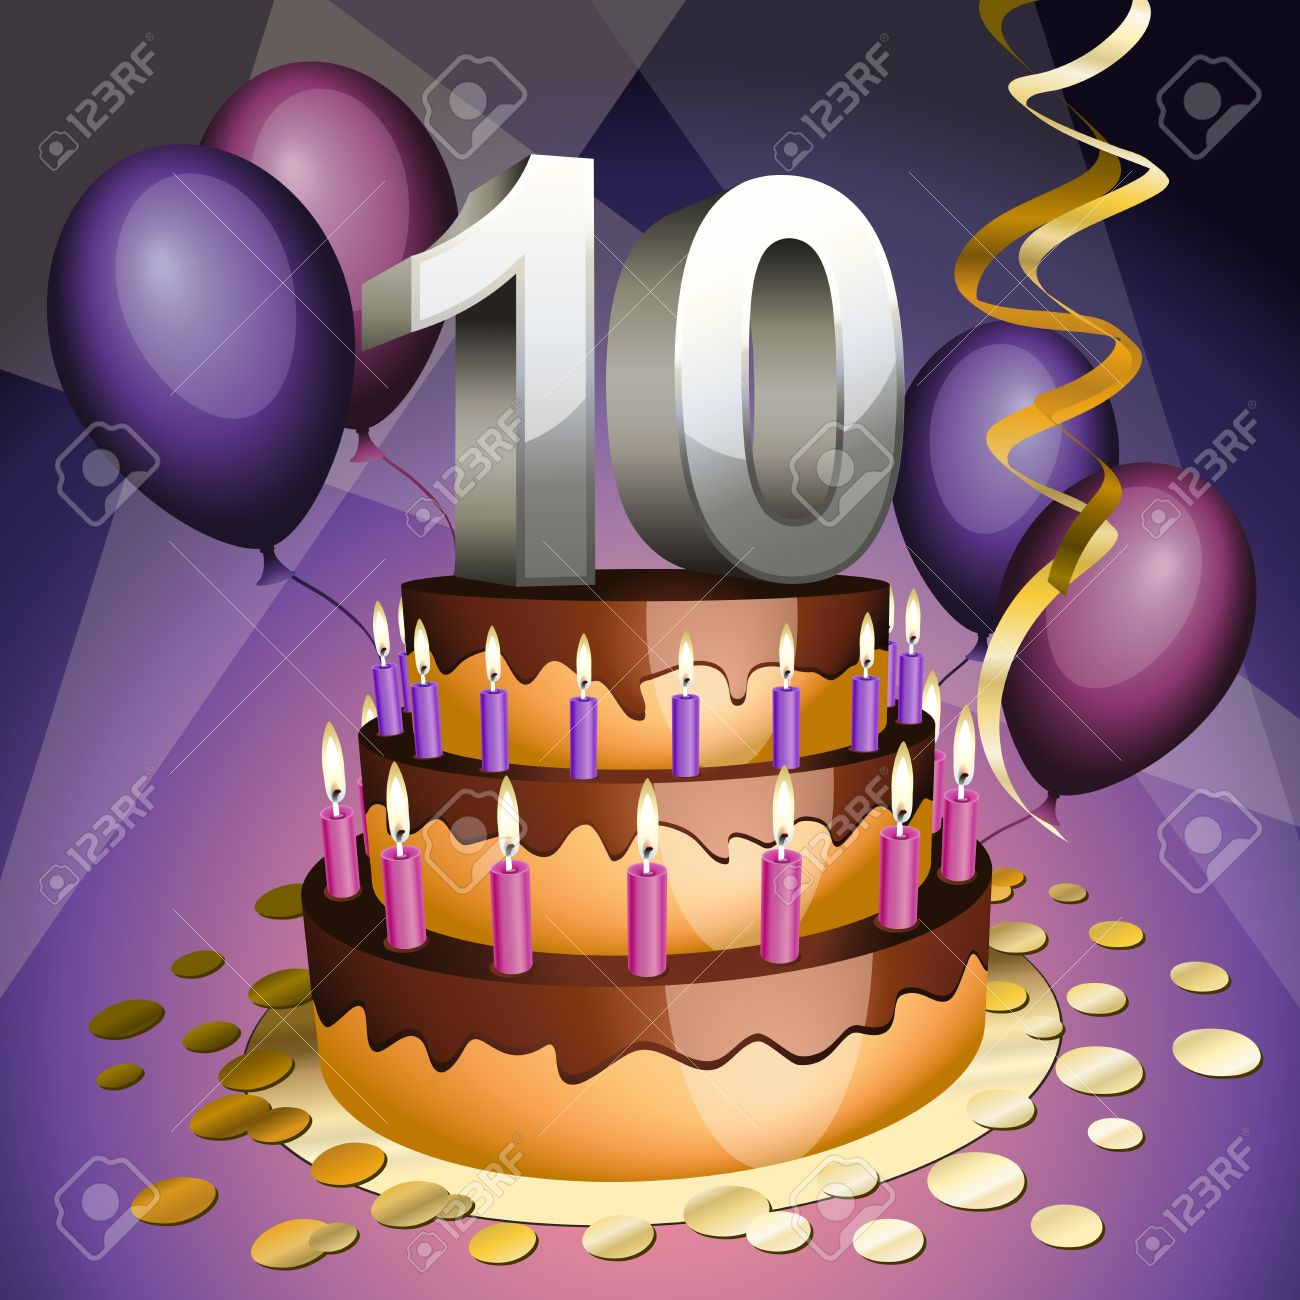 Tenth anniversary cake with numbers, candles and balloons Stock Vector - 10651940